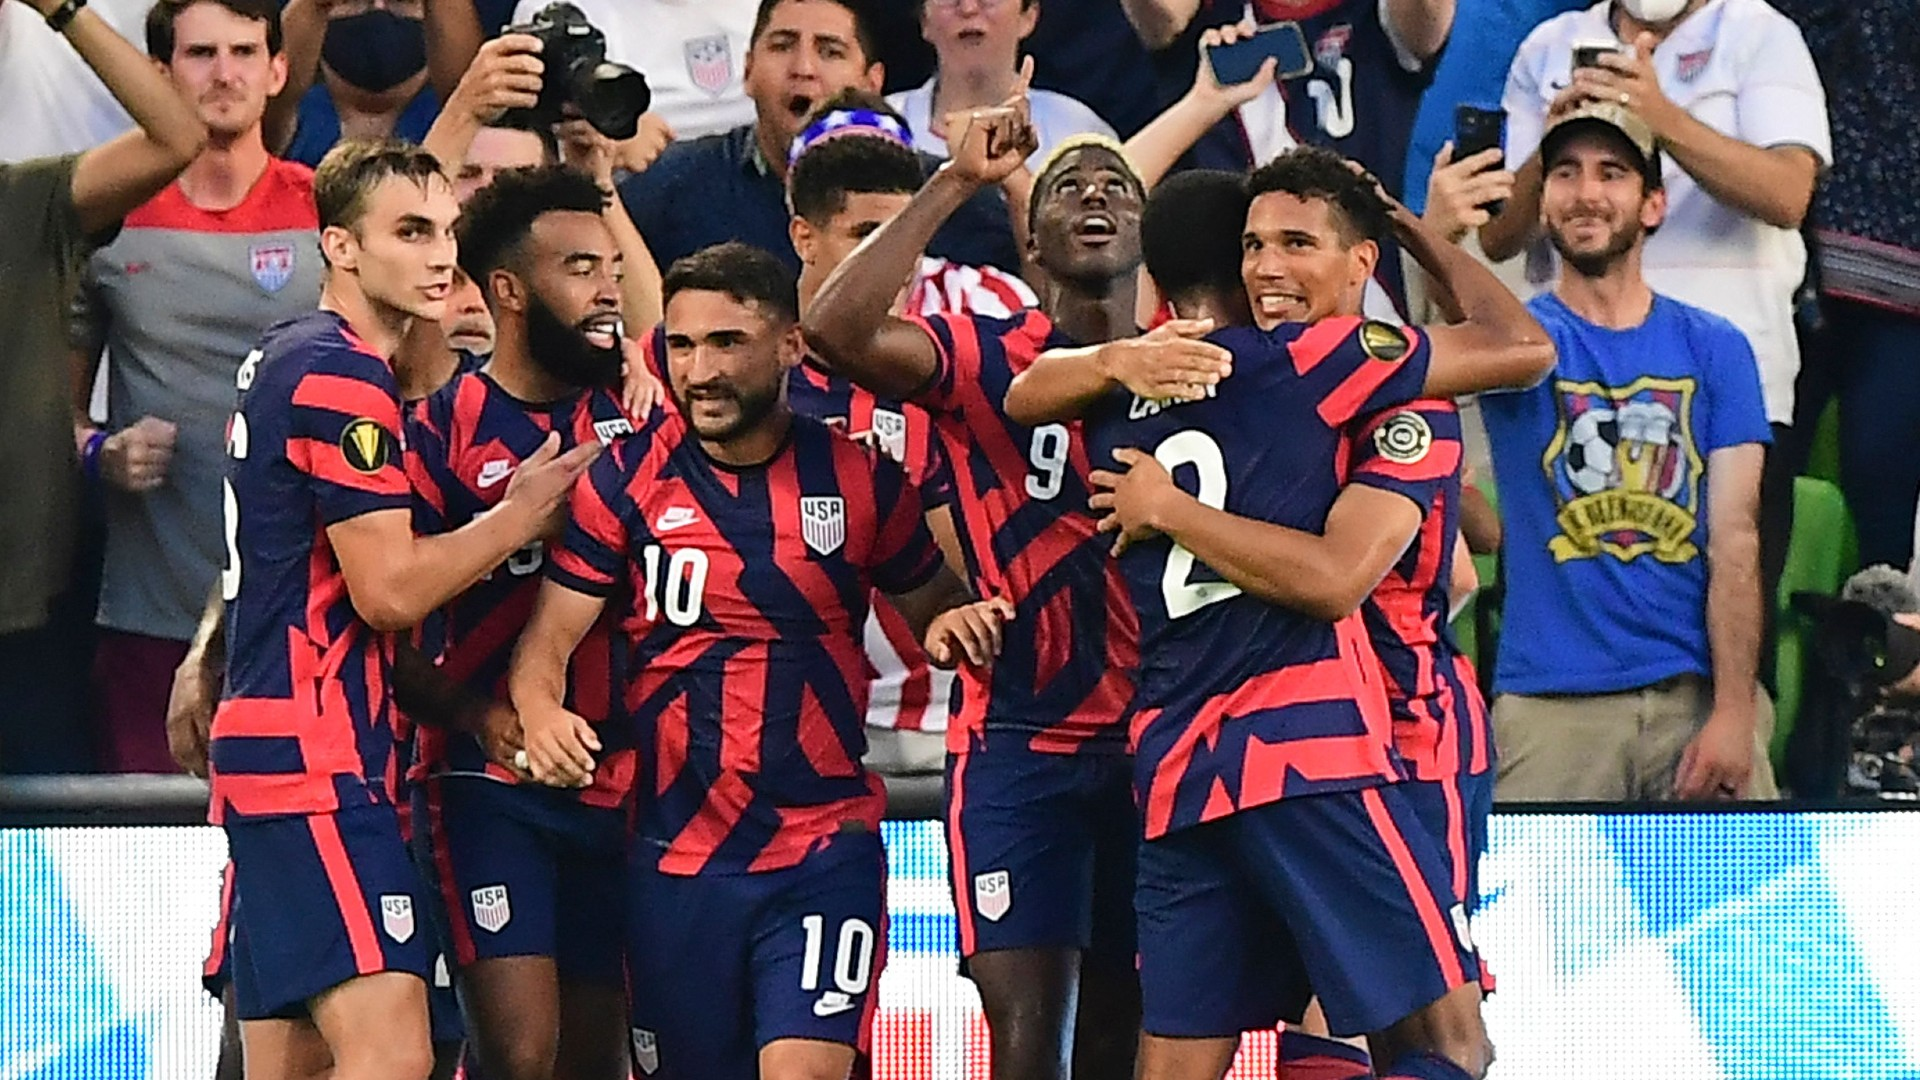 'We're not done' - Berhalter says USMNT aren't content with just reaching Gold Cup final ahead of Mexico showdown